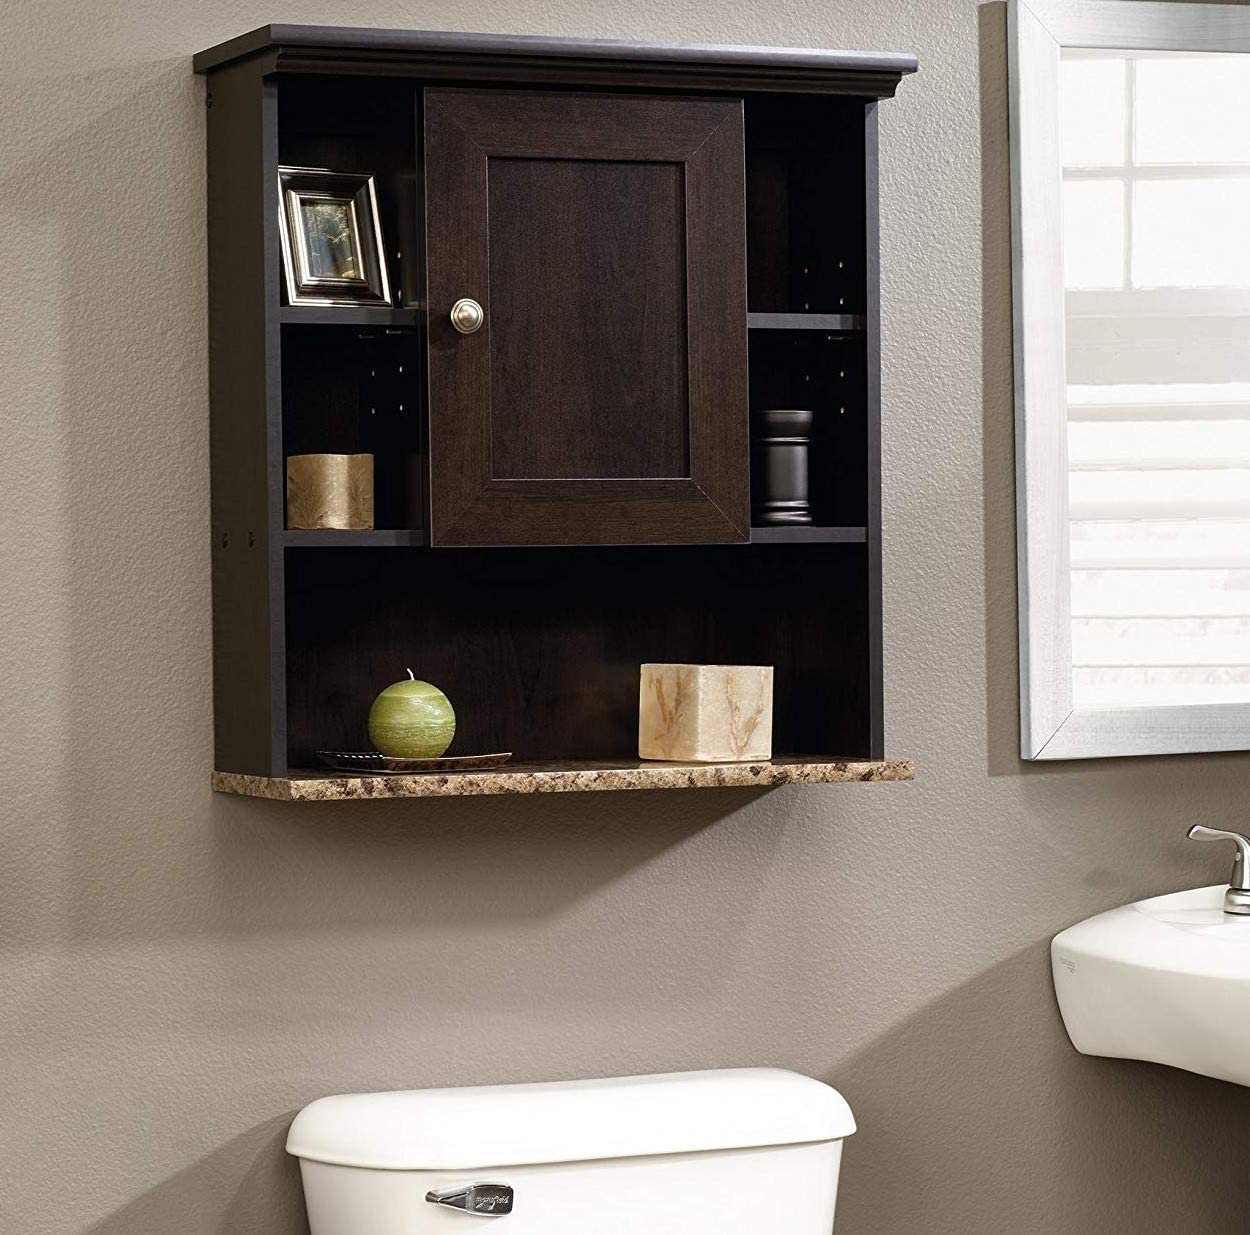 Bathroom Medicine Wall Cabinet with 3 Adjustable Shelves, Over the Toilet Cabinet with Reversible Door, Wall Mounted Hanging Storage Organizer Great Addition to Small Spaces with Modern Design, Dark B